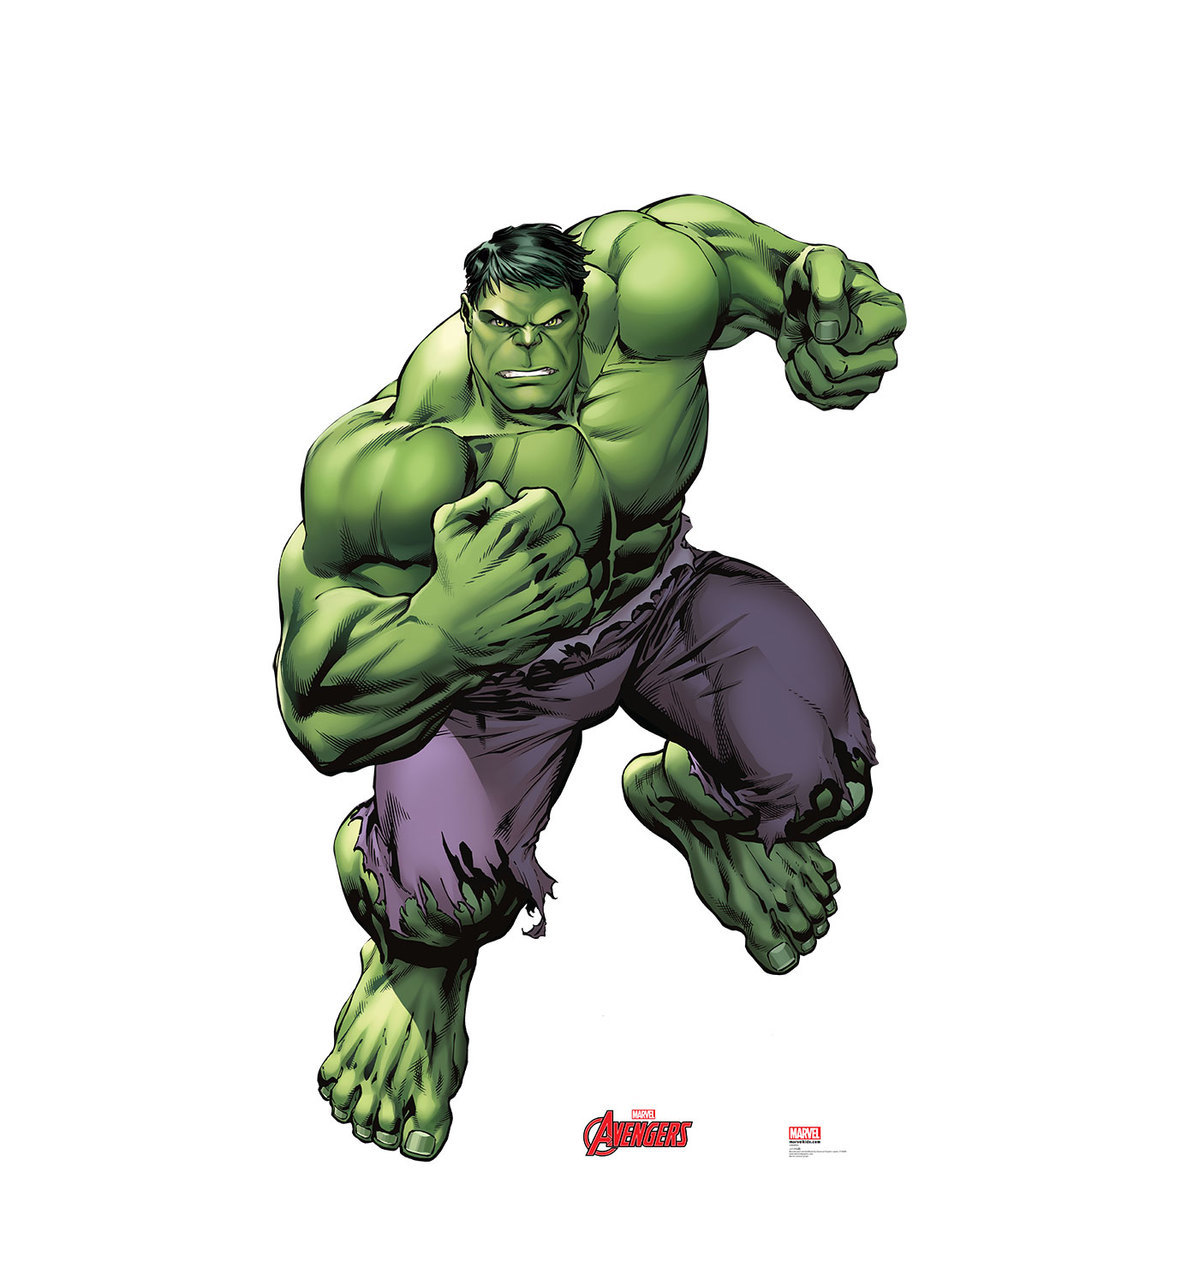 """Incredible Hulk Avengers Marvel Superhero Cutout Stand Large Cardboard Cutout Party Prop Decor Birthday party Supplies, Comic Superhero Birthday decoration Size is: 69"""" x 45"""""""